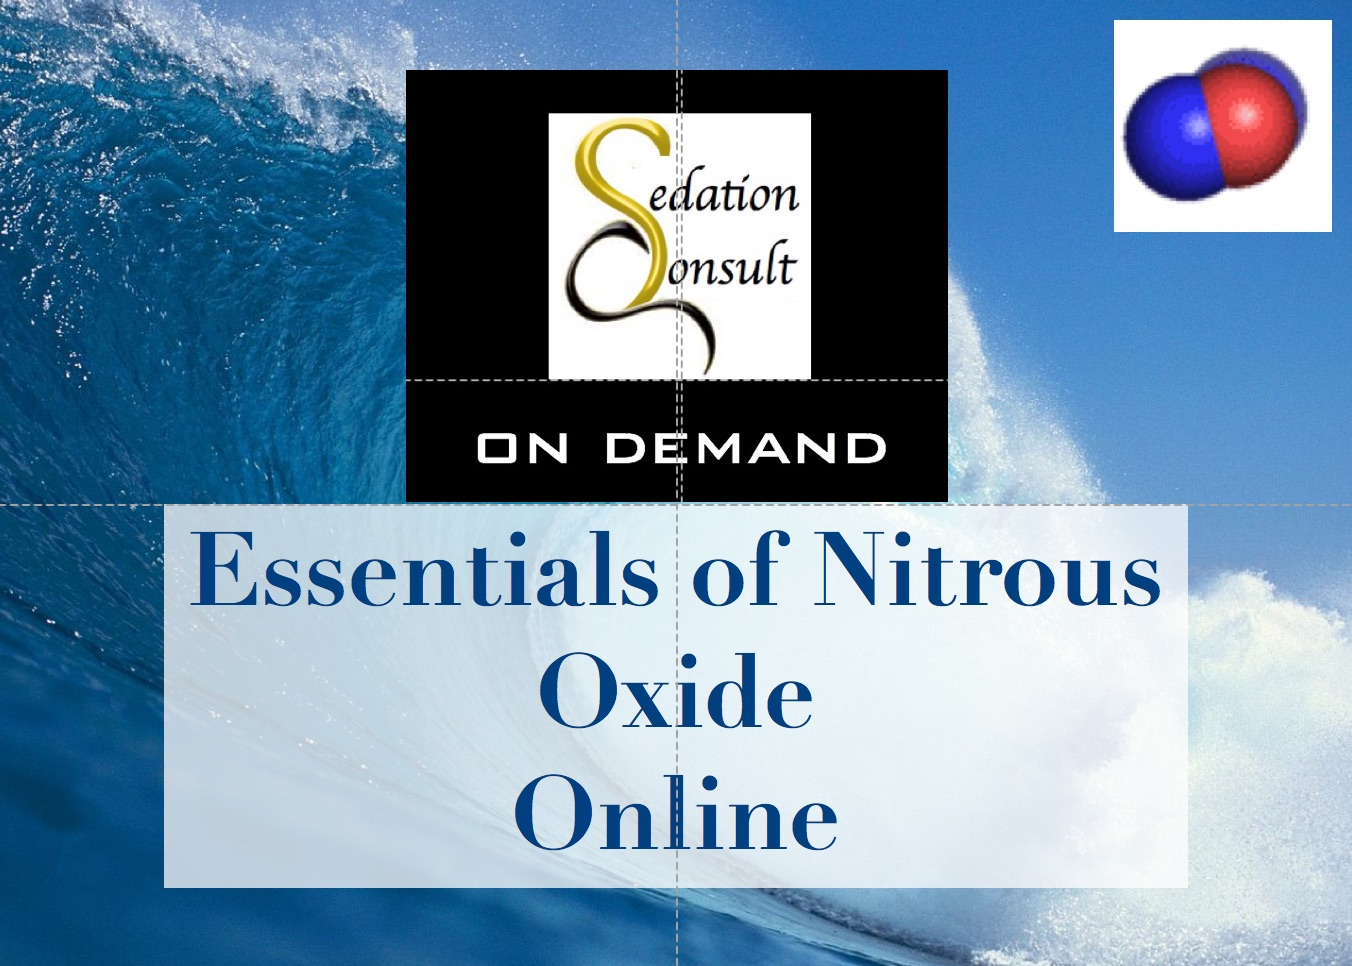 Essentials of nitrous oxide online part 1 of 2 for dentists xflitez Gallery